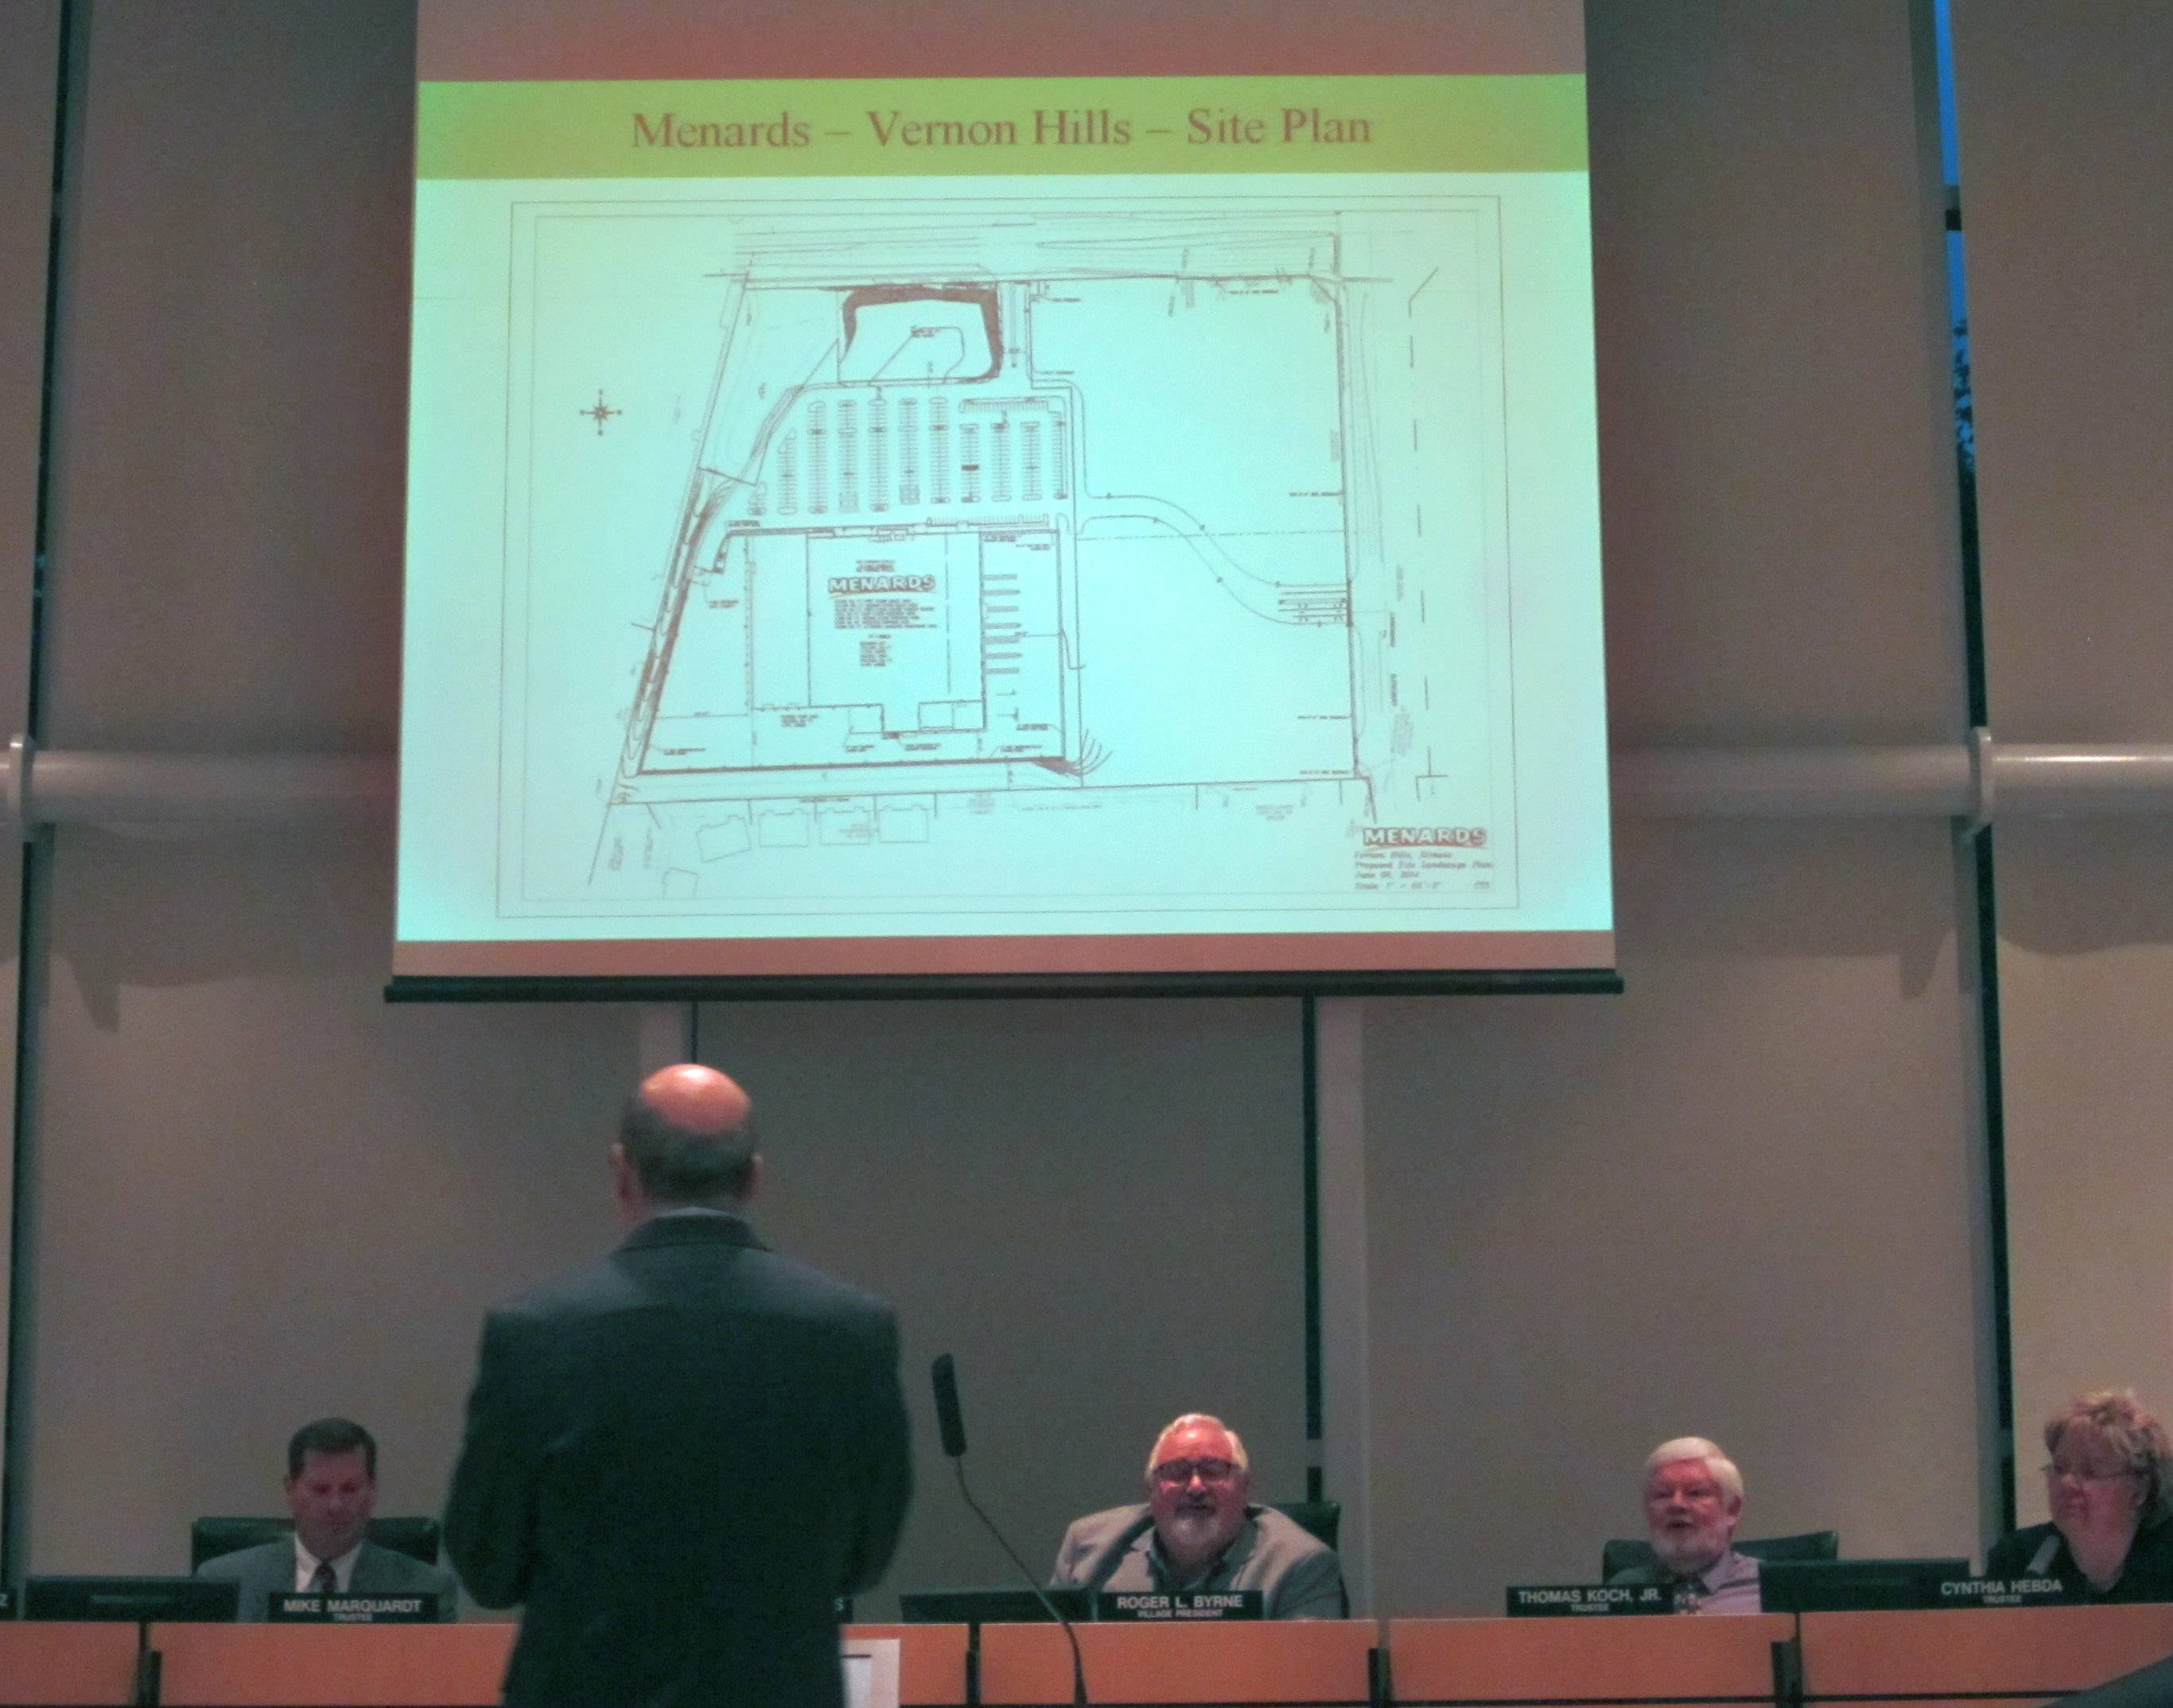 The Vernon Hills village board listens to public input Tuesday regarding a proposed Menards home improvement store.